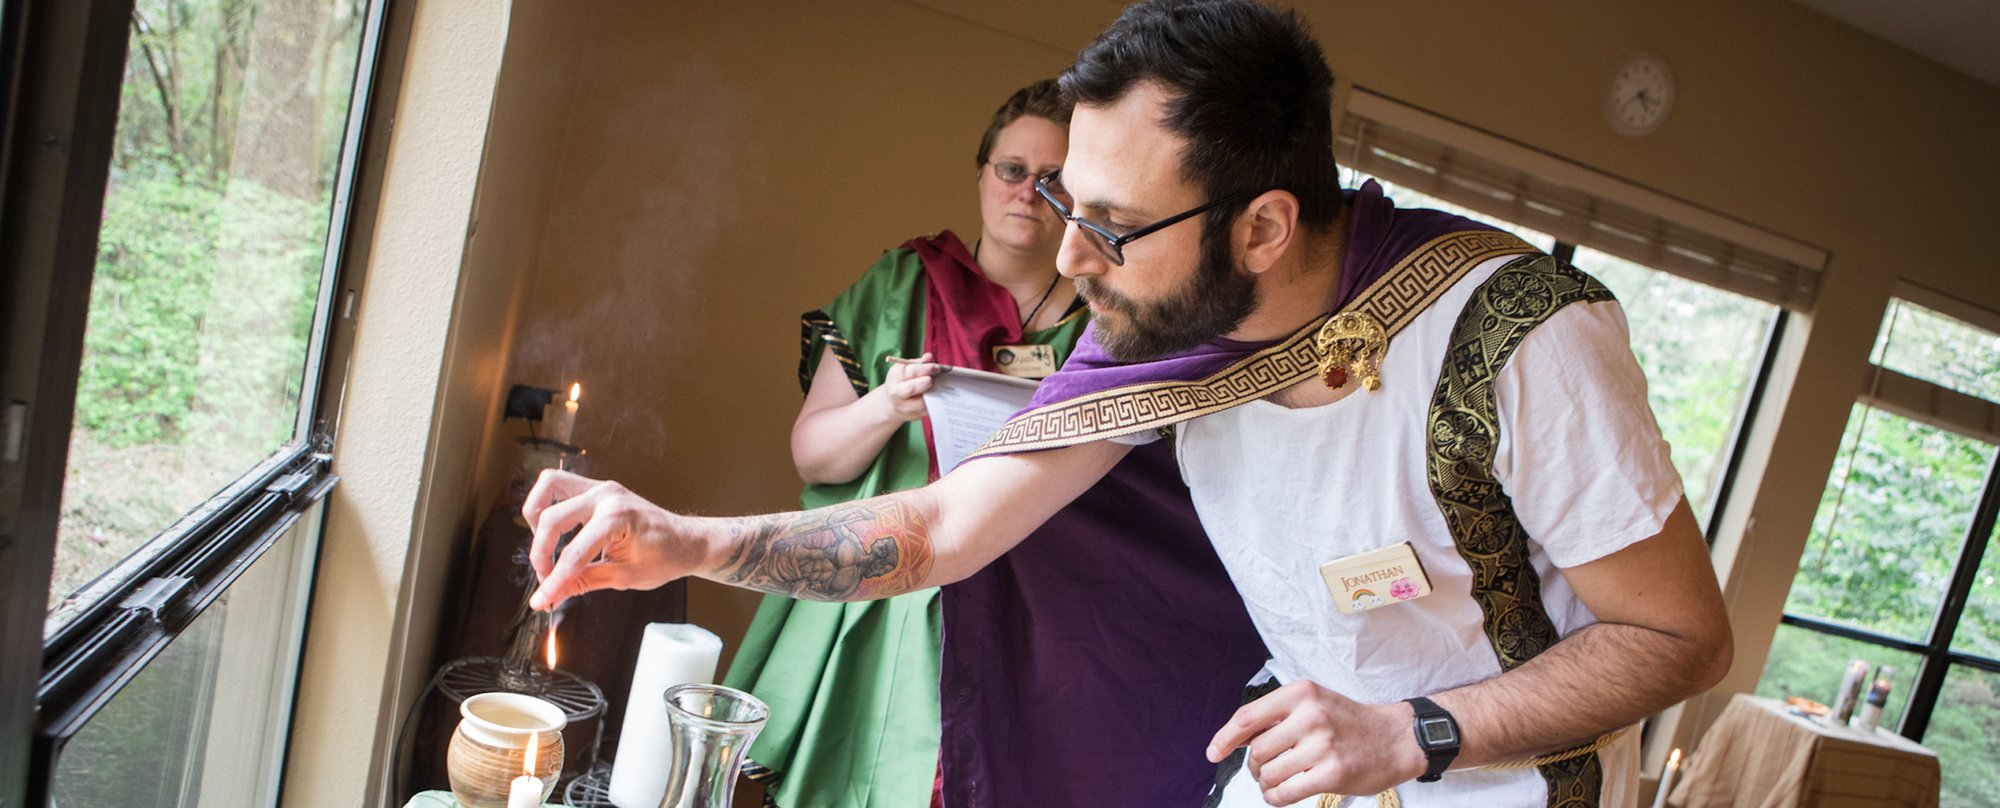 Meet the Modern-Day Pagans Who Celebrate the Ancient Gods